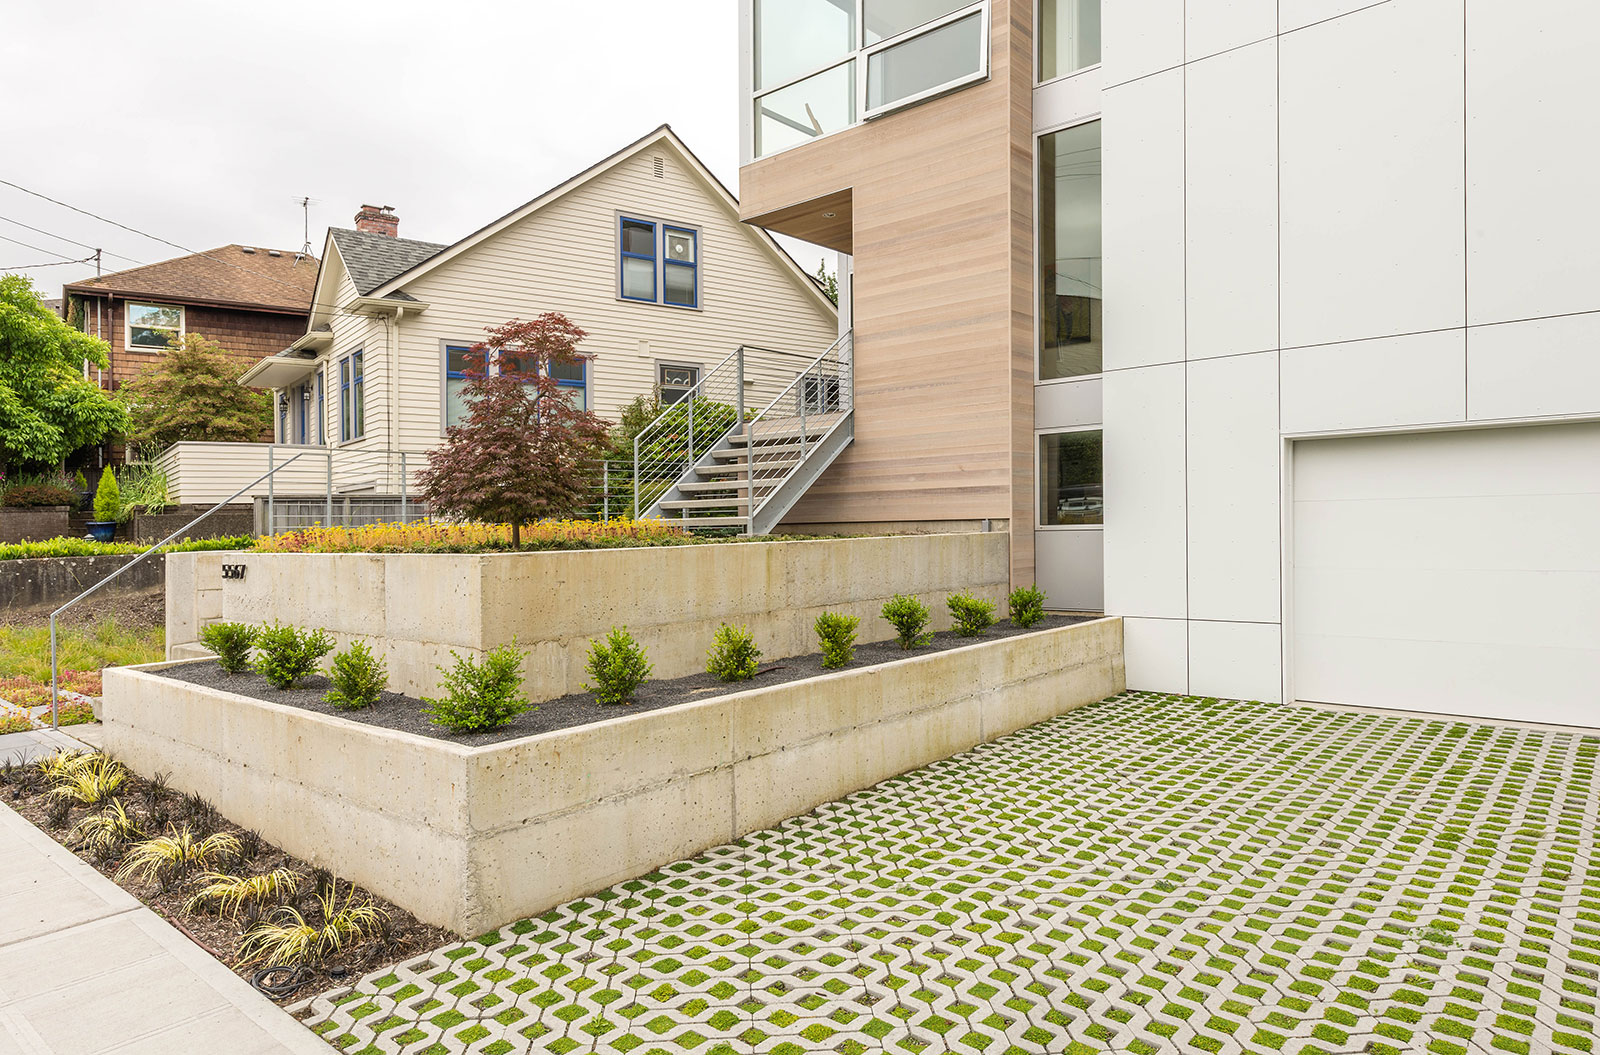 The driveway uses turf stone from mutual materials which satisfies the citys stormwater infiltration code and brings color and texture to the front of the